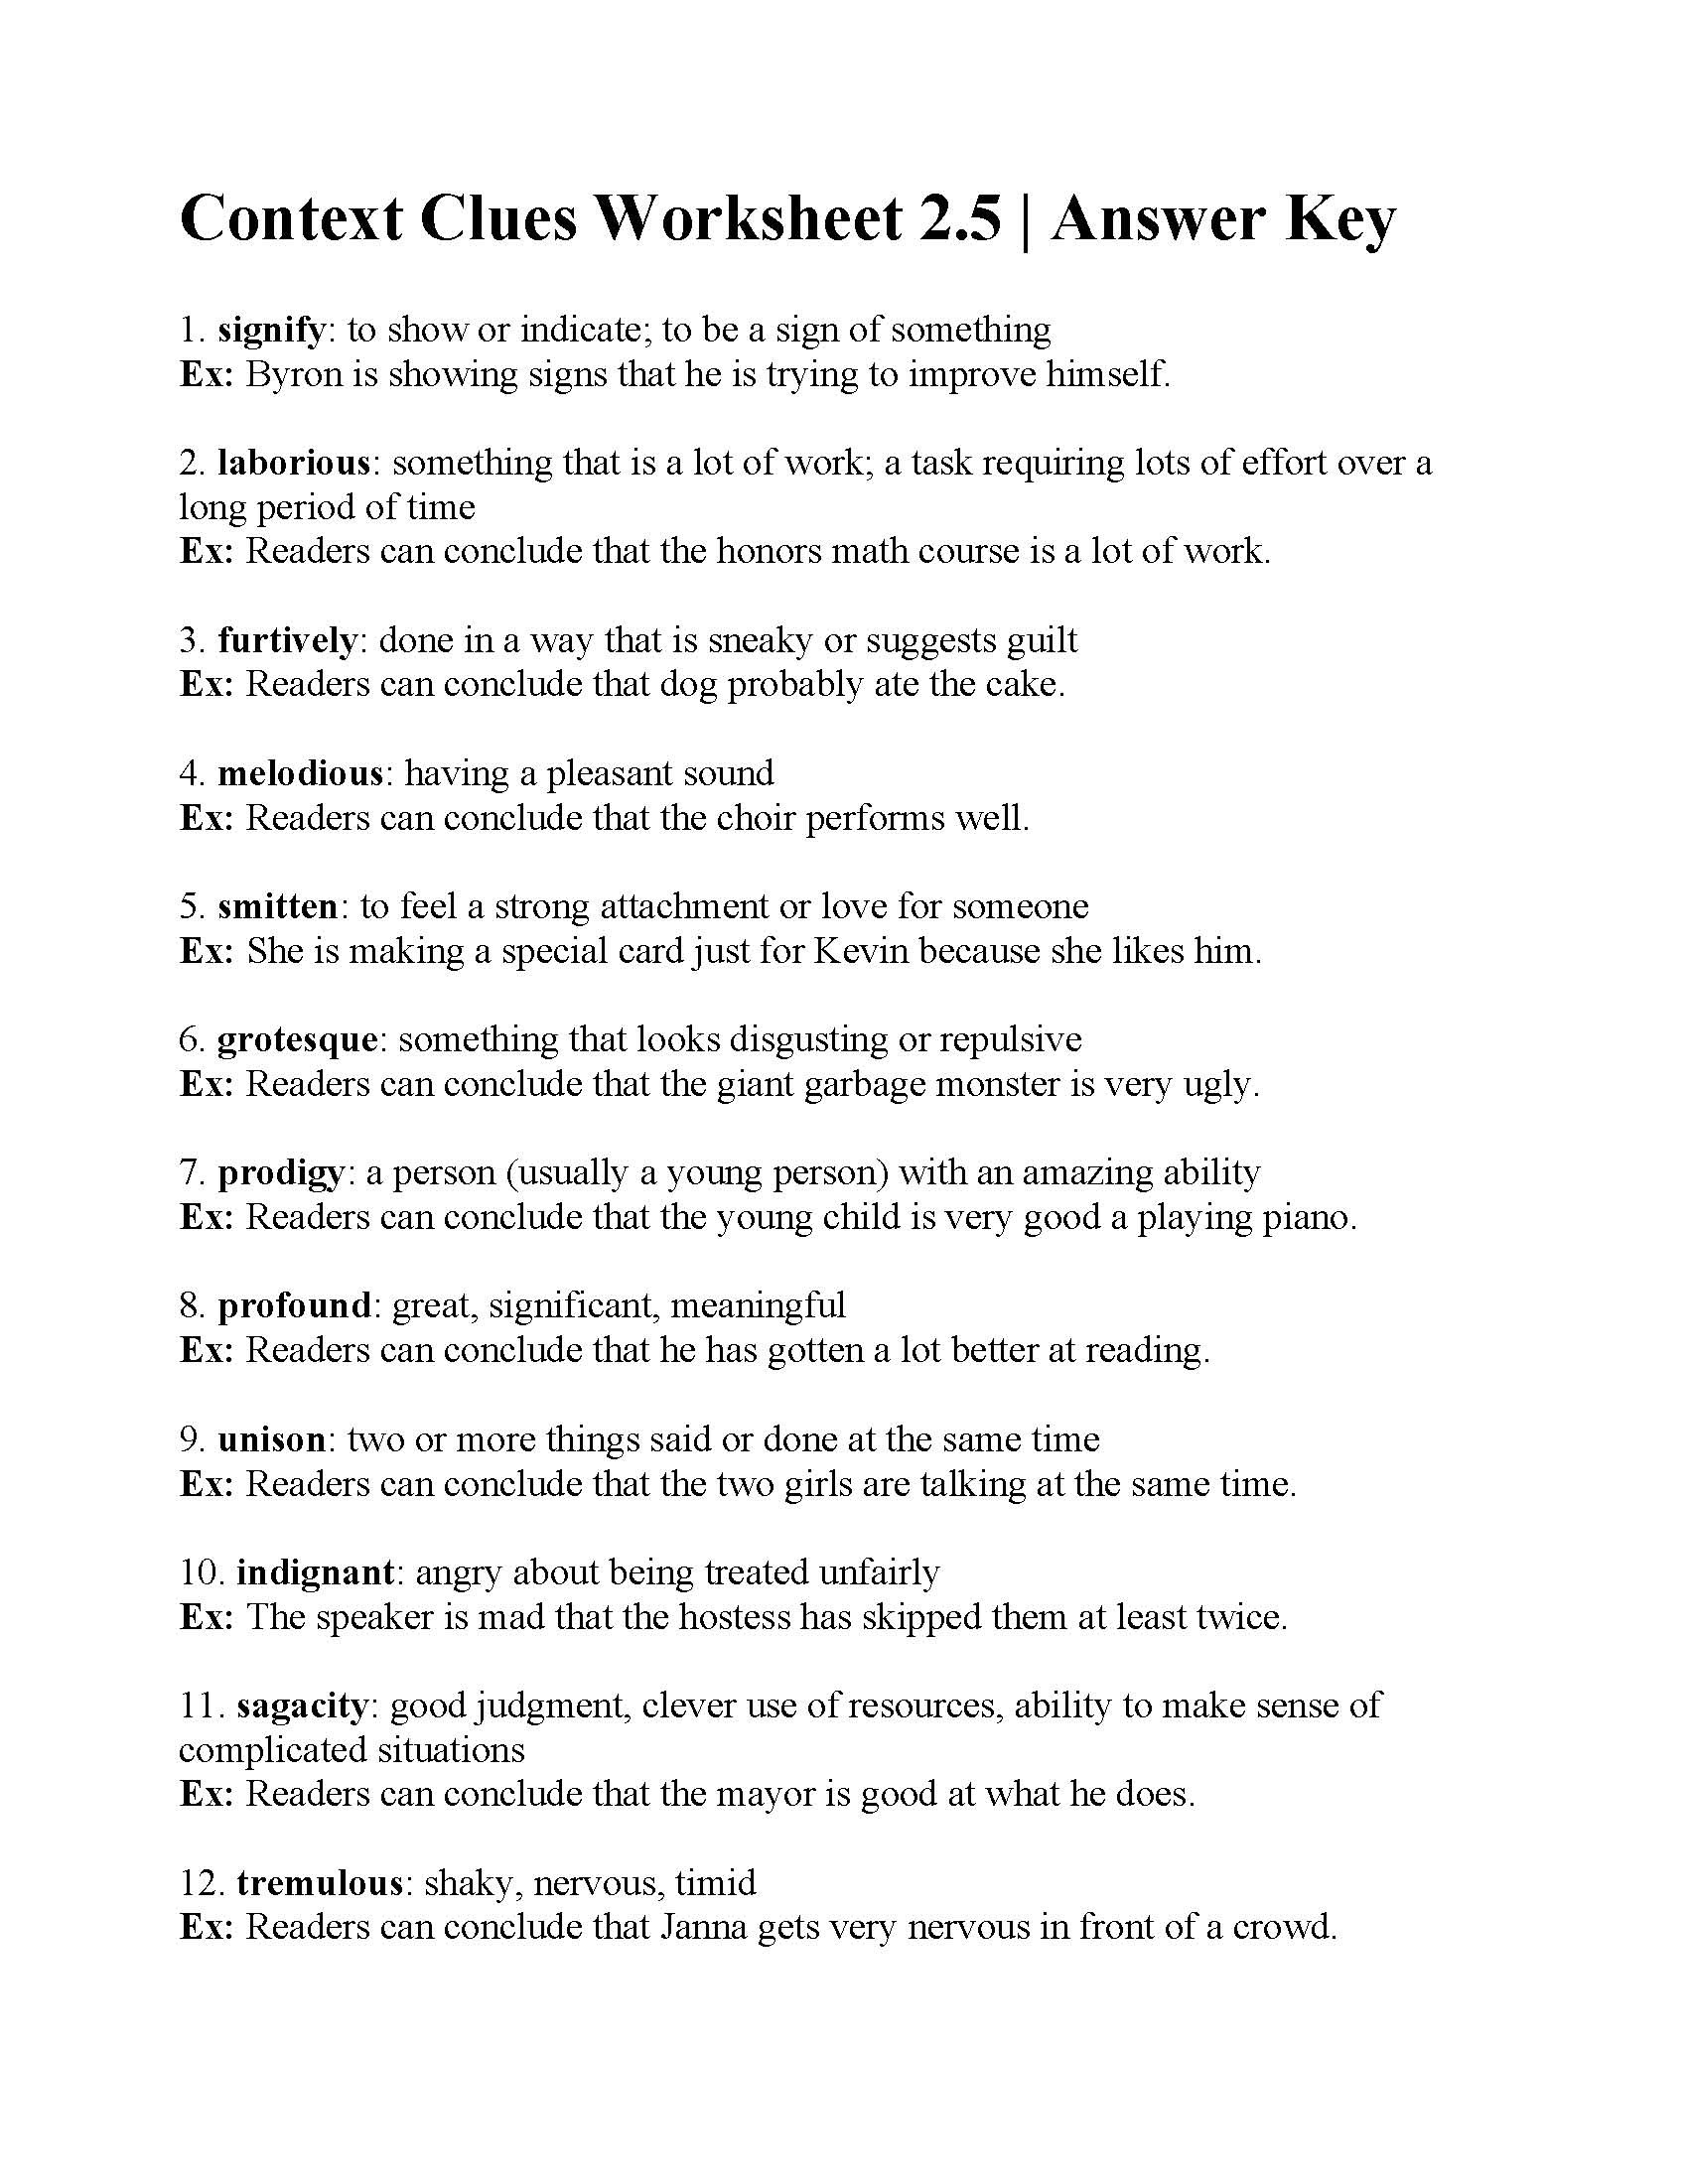 Context Clues Worksheets Grade 5 Context Clues Worksheet Answers Worksheets with Algebra Ks3